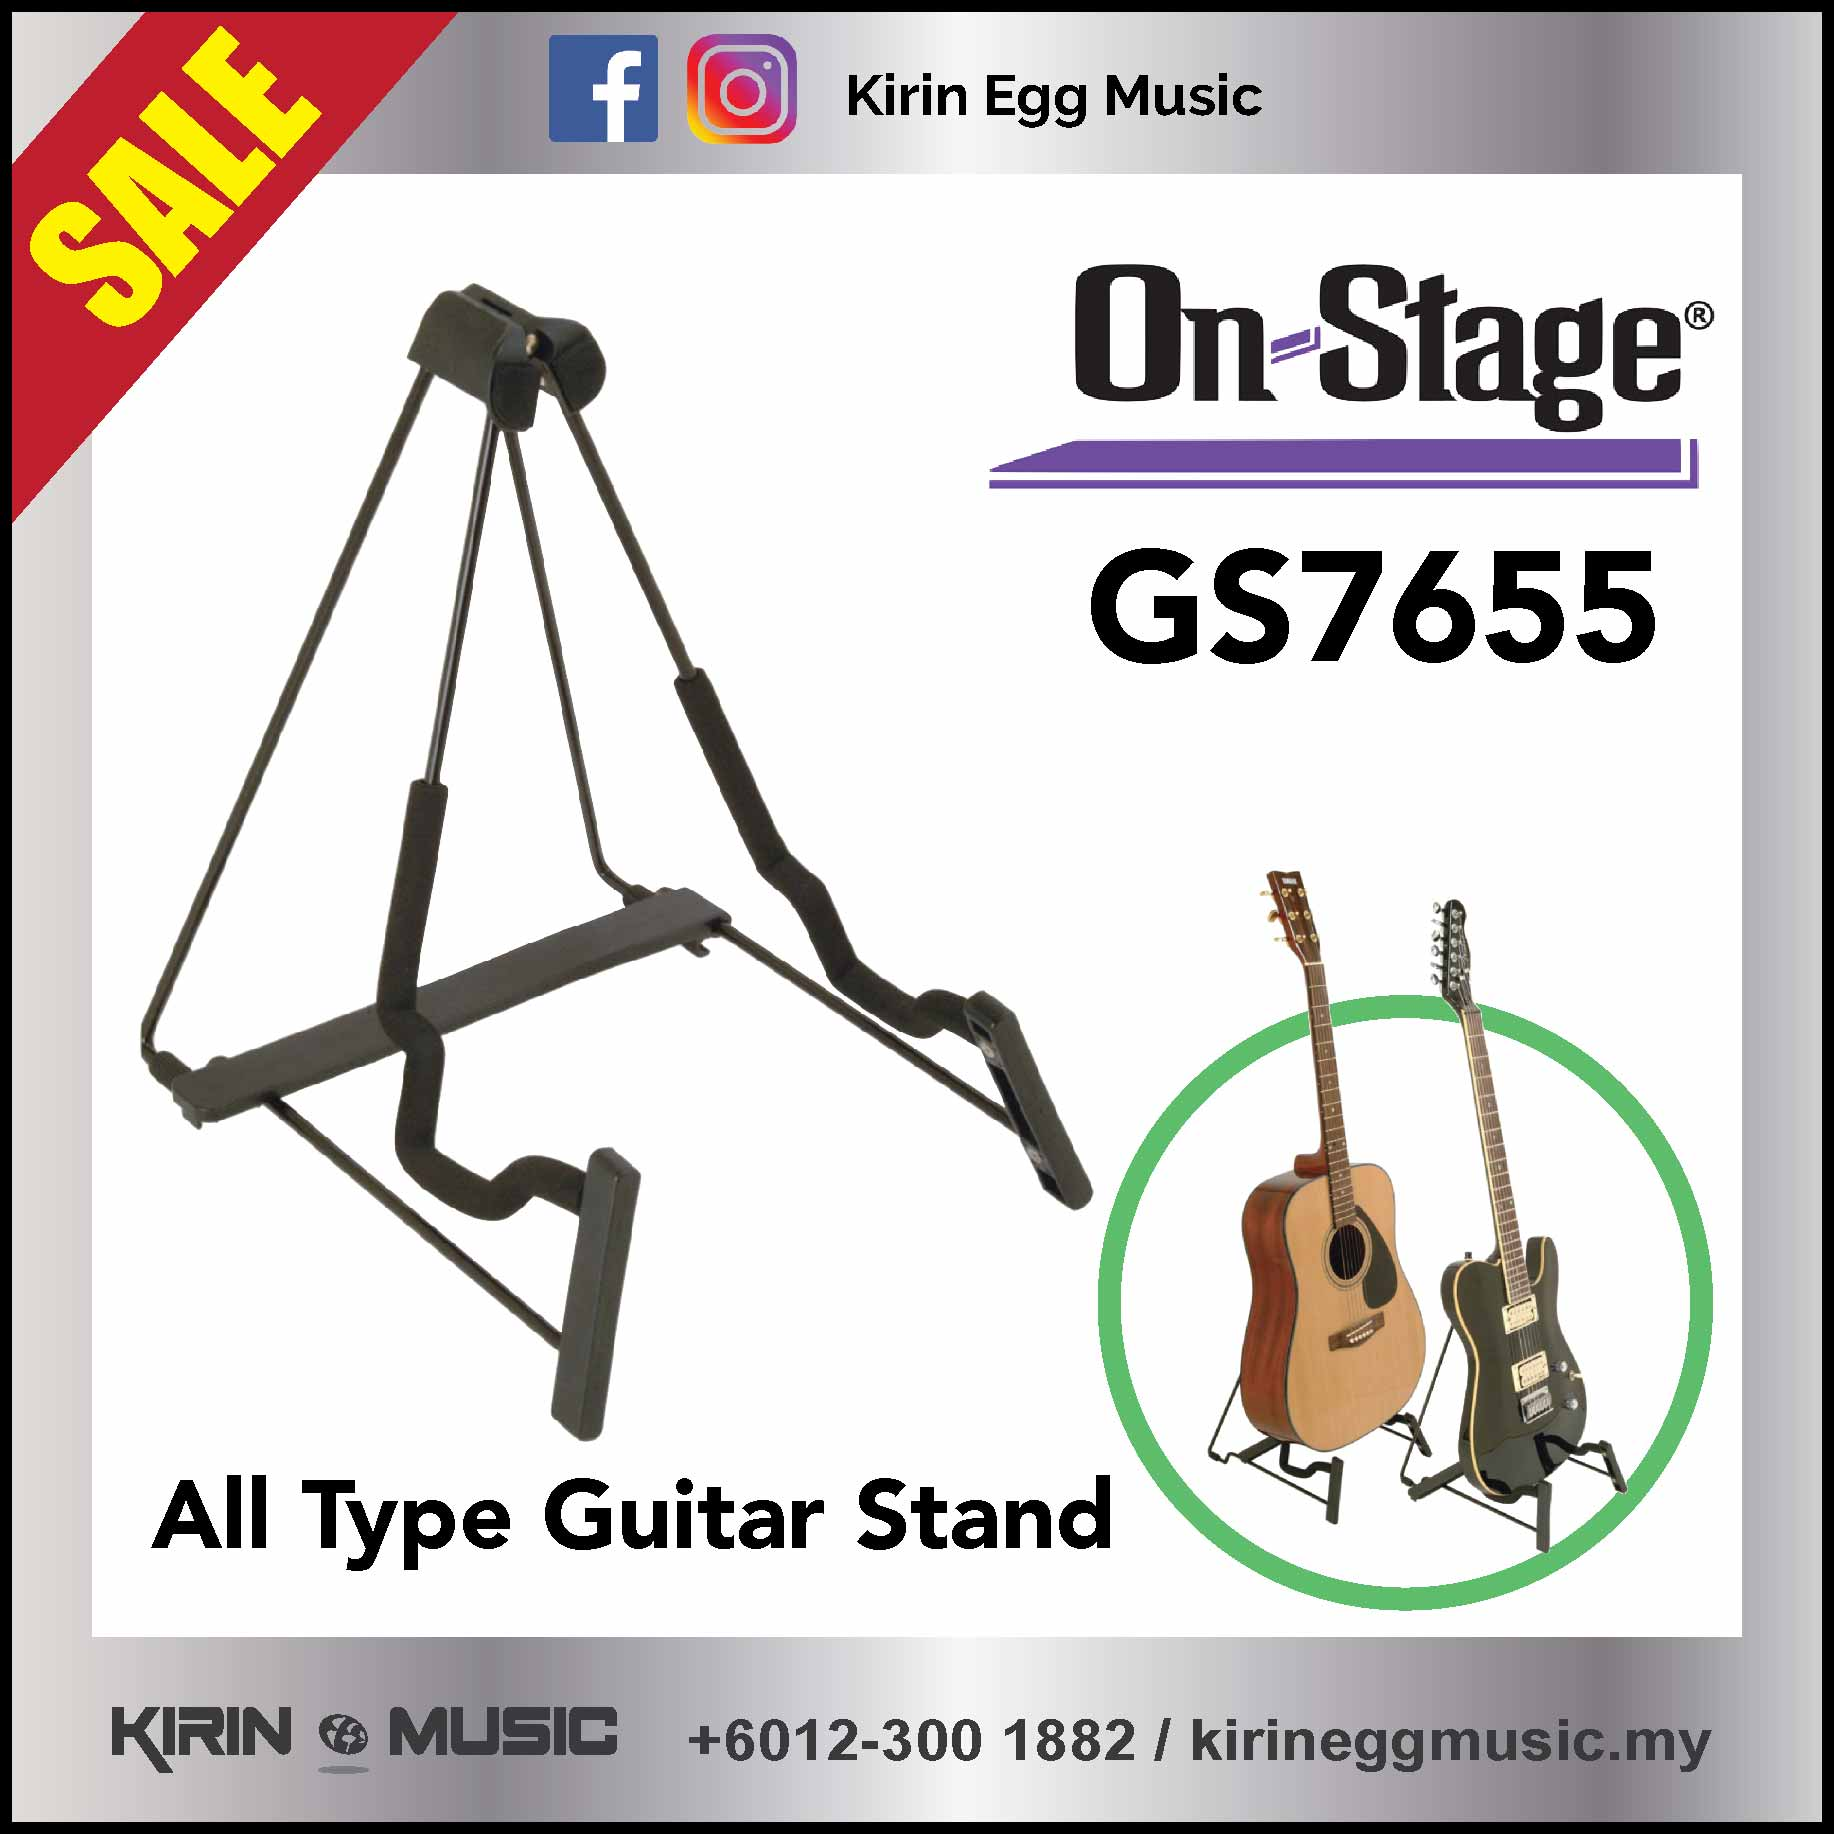 Onstage Guitar Stand, Bass Stand, Classical Stand, Acoustic Stand, Folding/Folded Stand, GS7655 / GS 7655